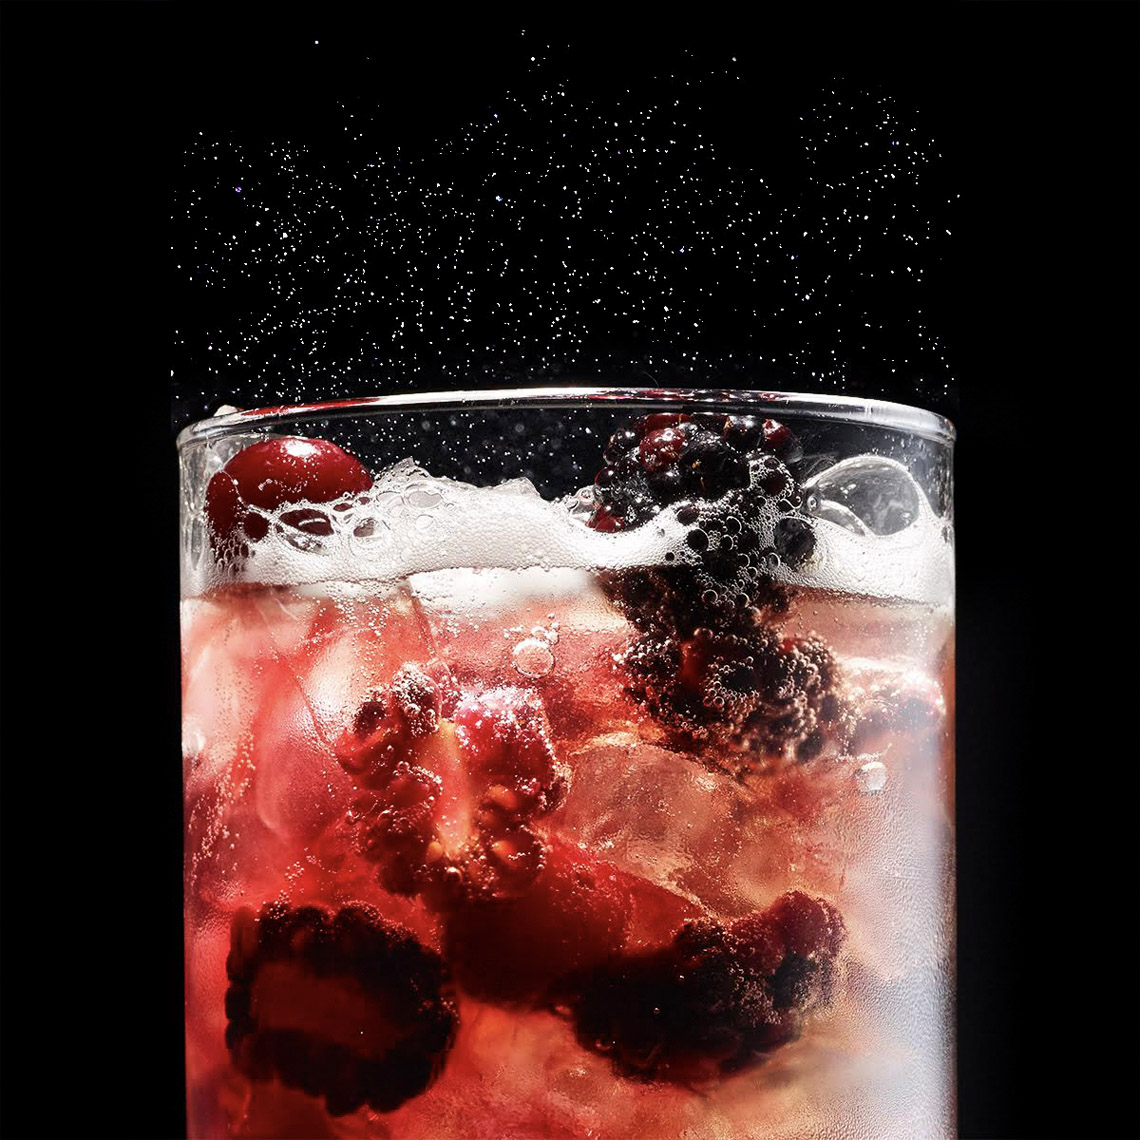 Robyn Valarik San Francisco Based Food & Drink Stylist - beverage, drink, soda, fizz, carbonated, carbonation, berries, red, garnish, refreshing, sweat, condensation, ice, food-photography